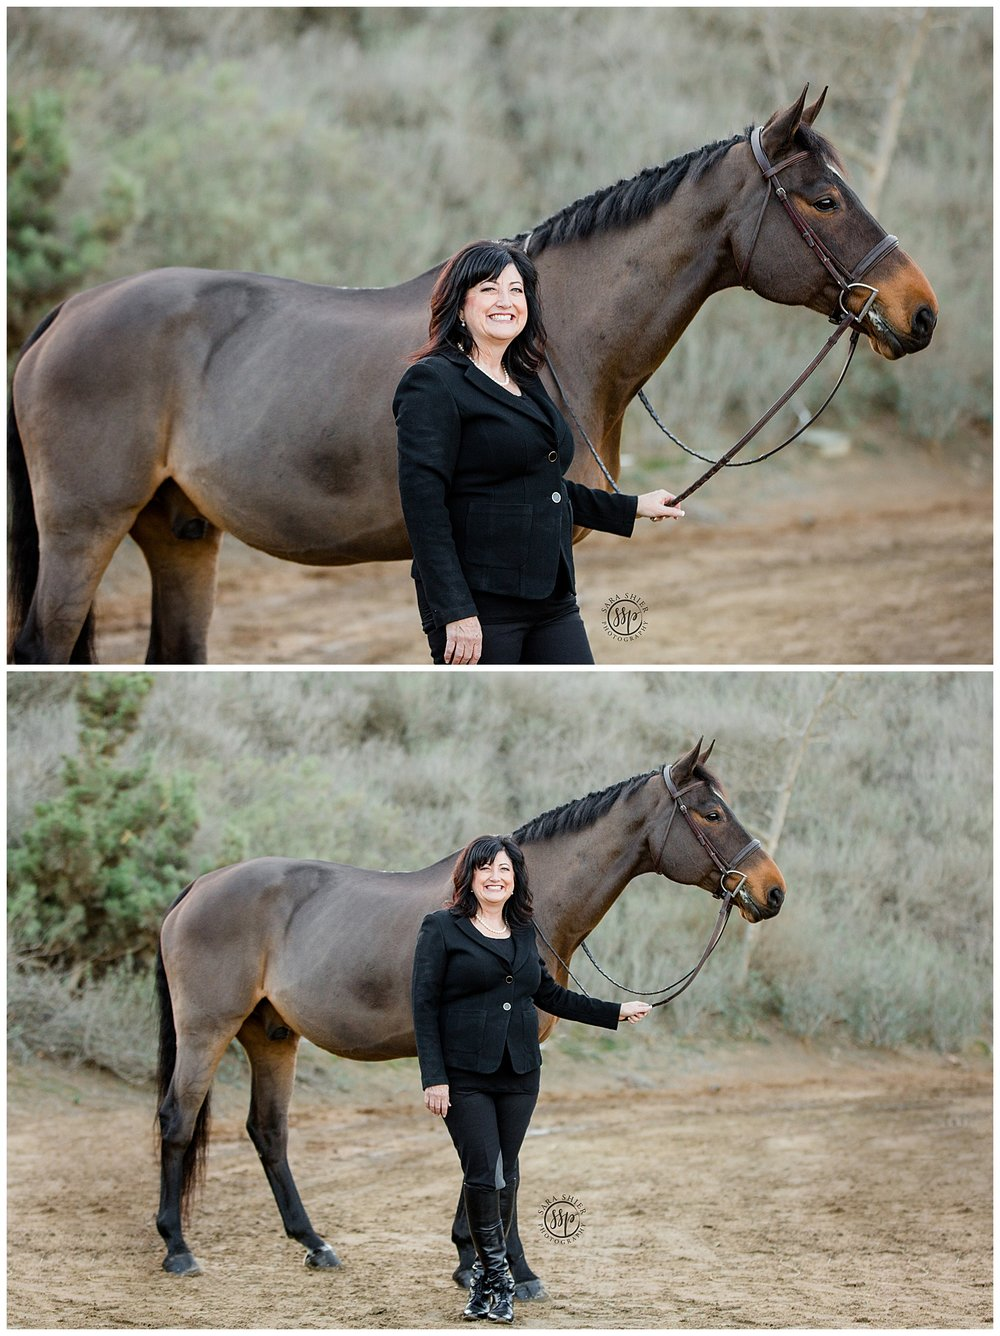 Black Background Horse Rider Equine Photographer Southern California Sara Shier Photography SoCal Equestrian Cowgirl_0458.jpg